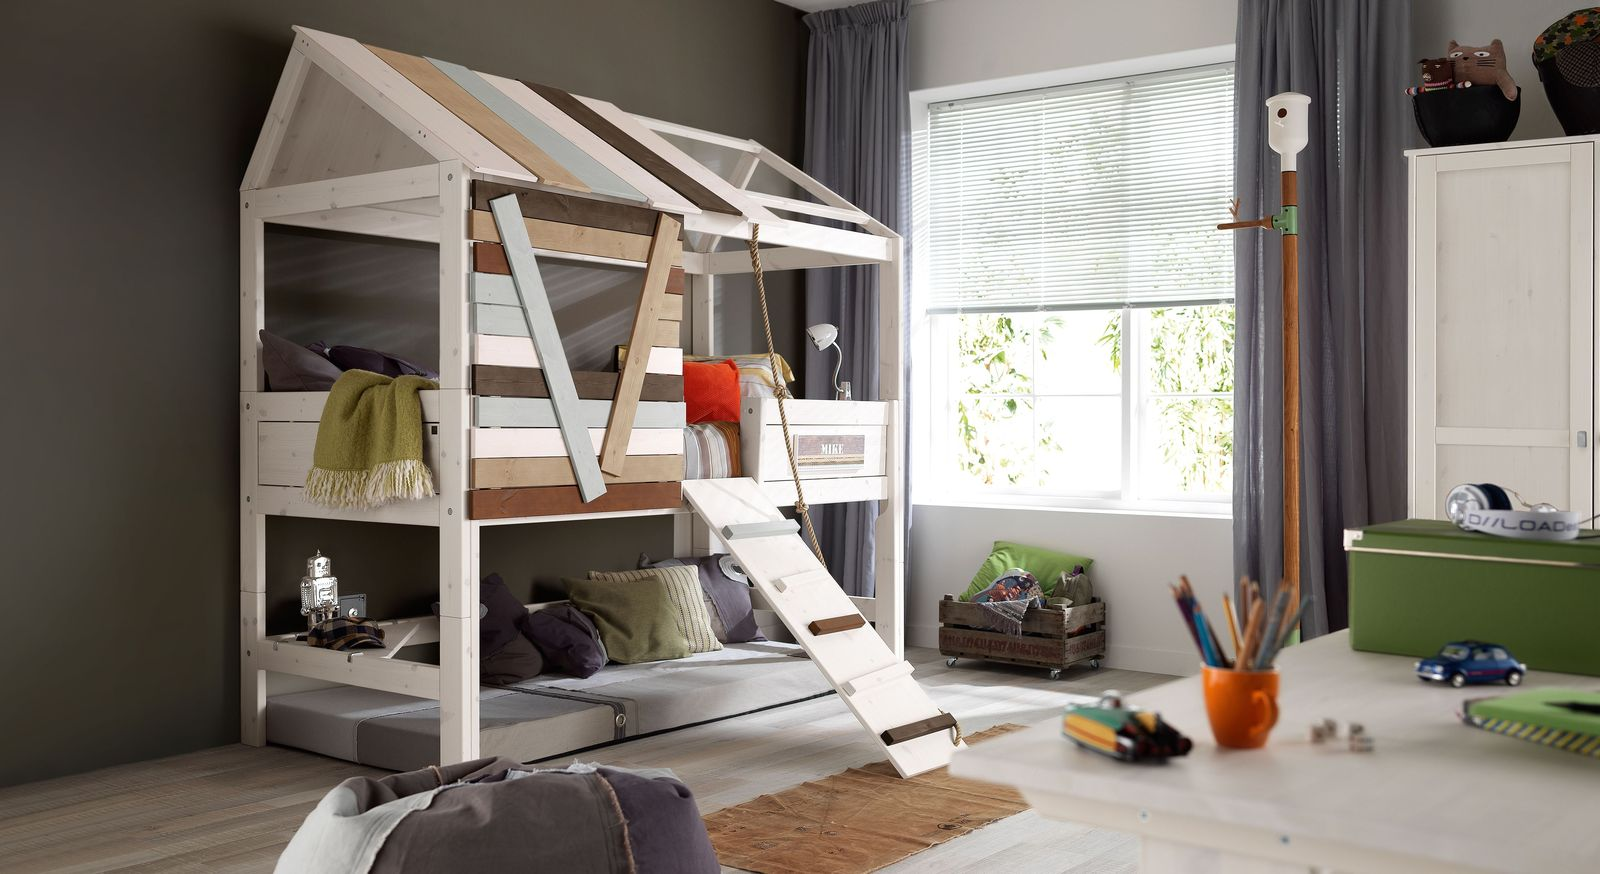 Kinderspielbett Hohes Lifetime Spielbett Aus Kiefer In Baumhaus Optik